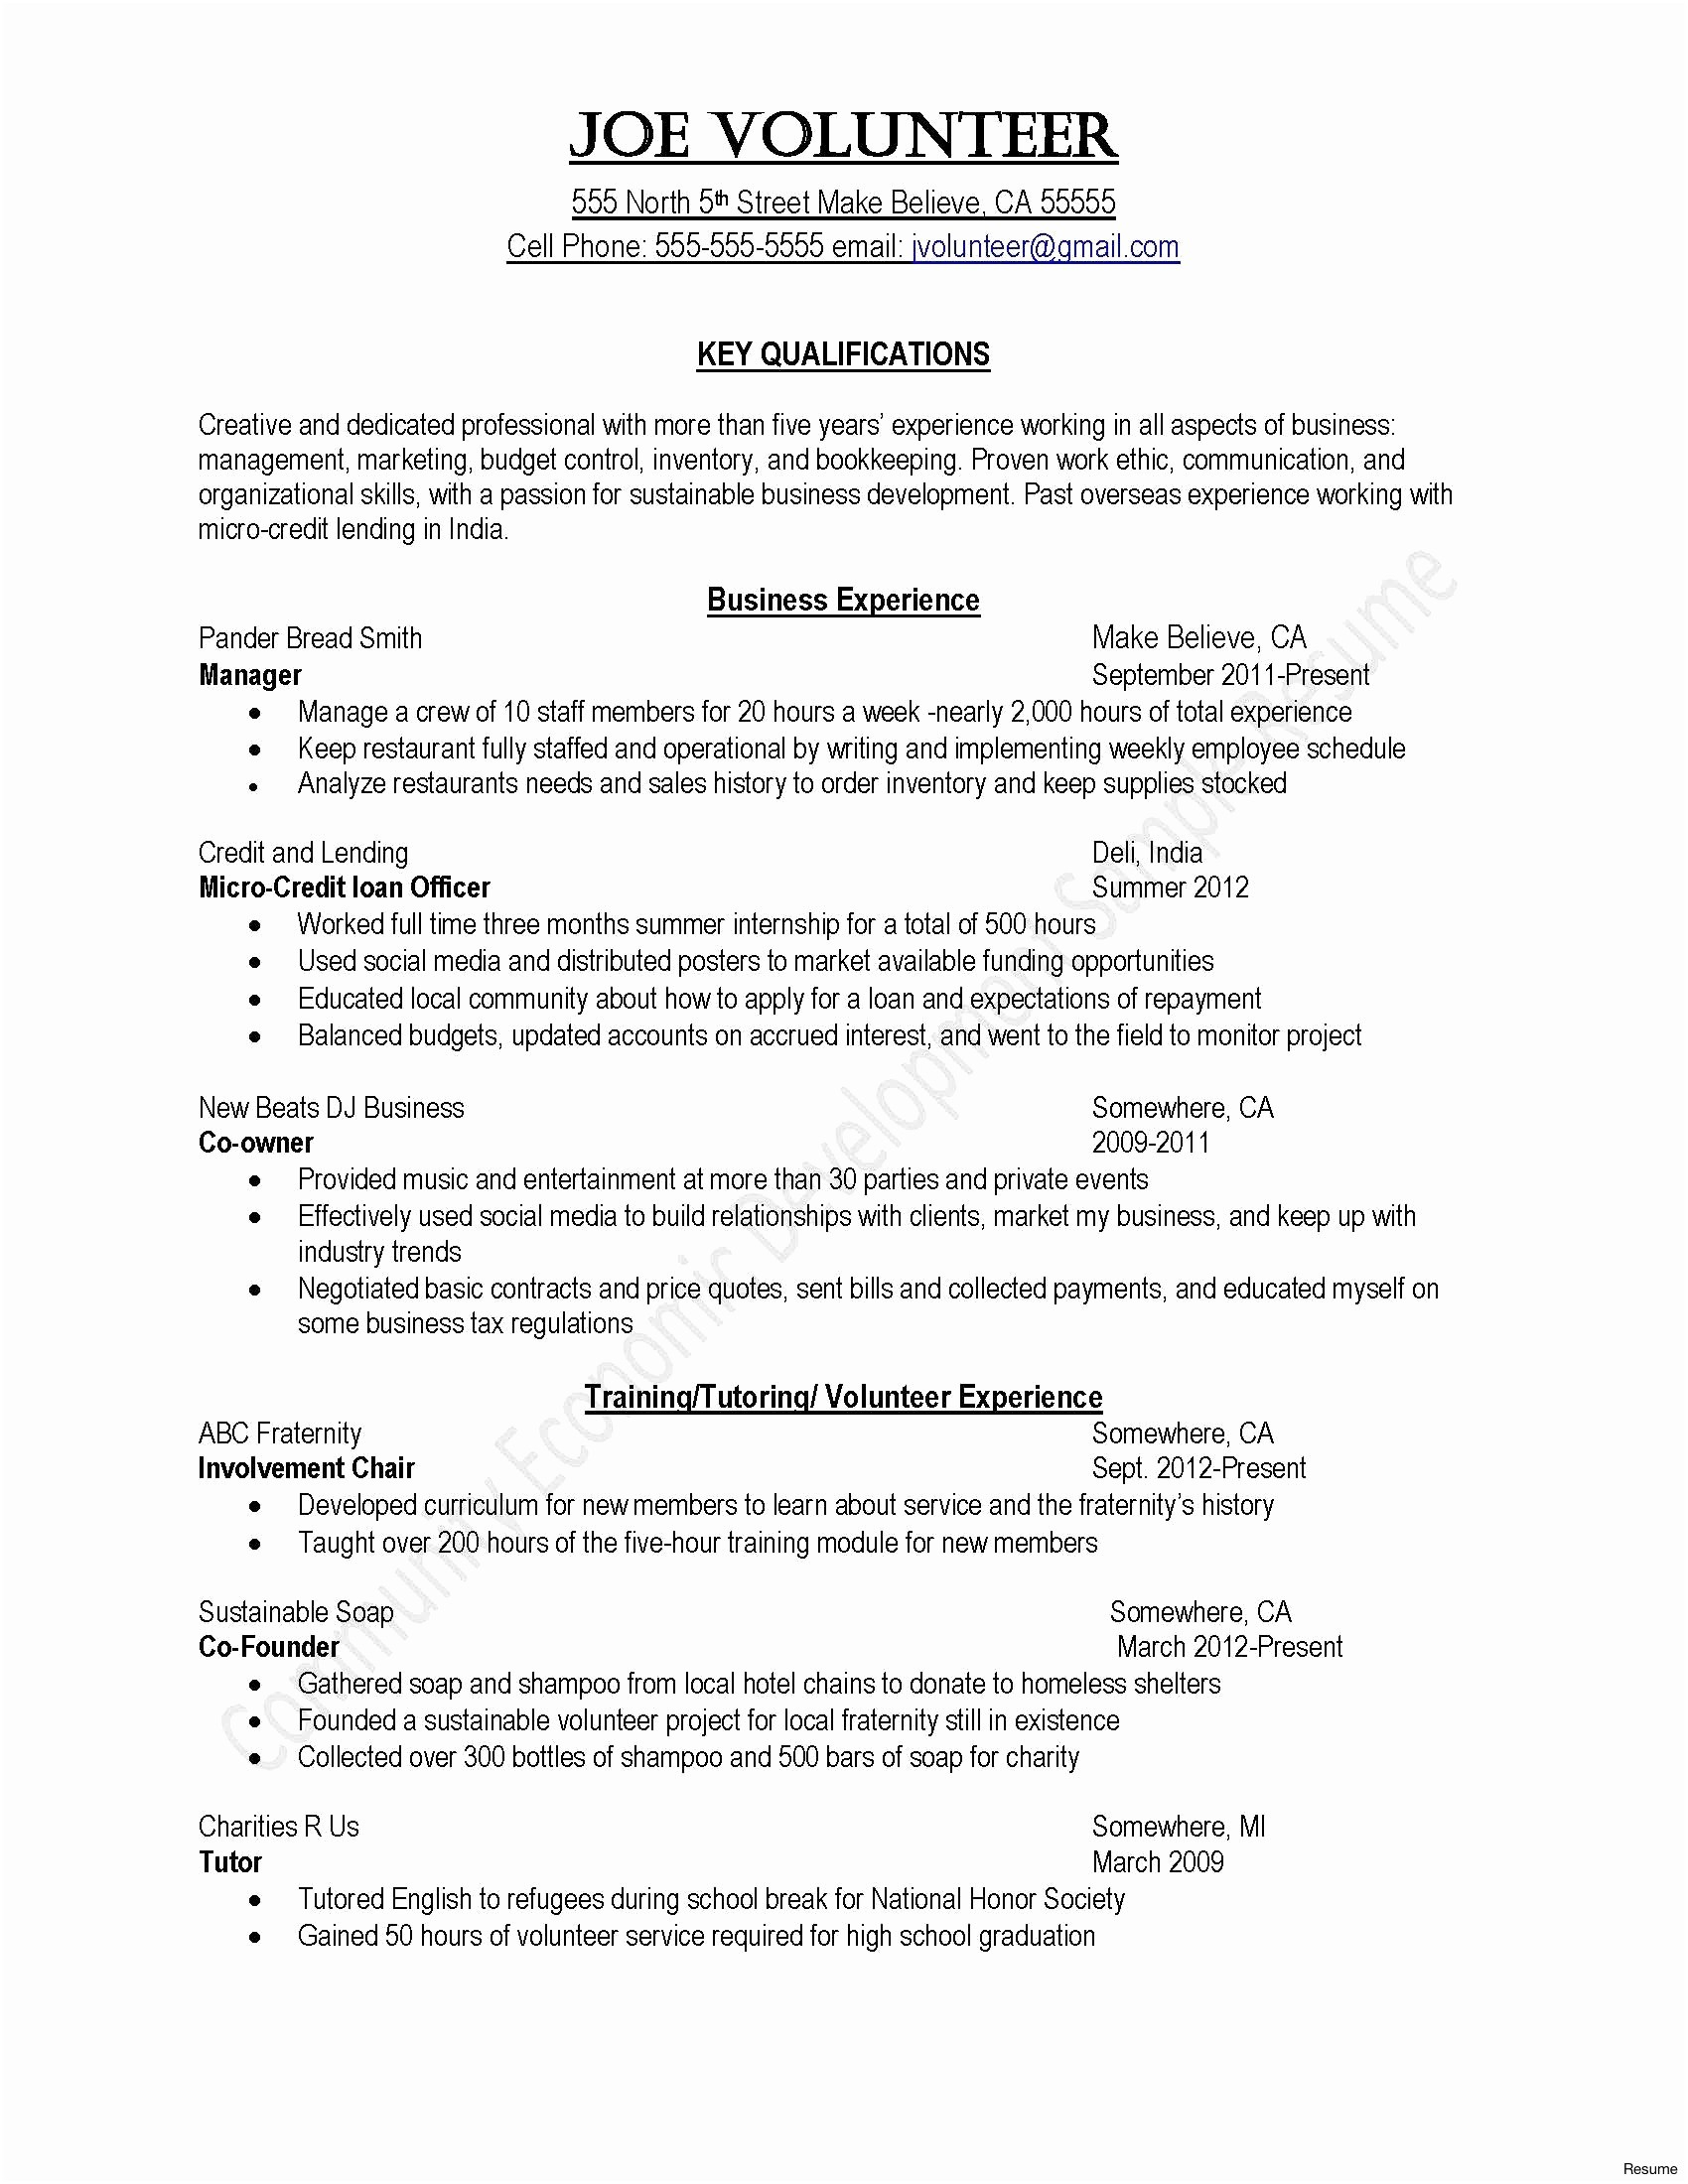 Professional Accountant Resume - Sample Resume for Tax Accountant